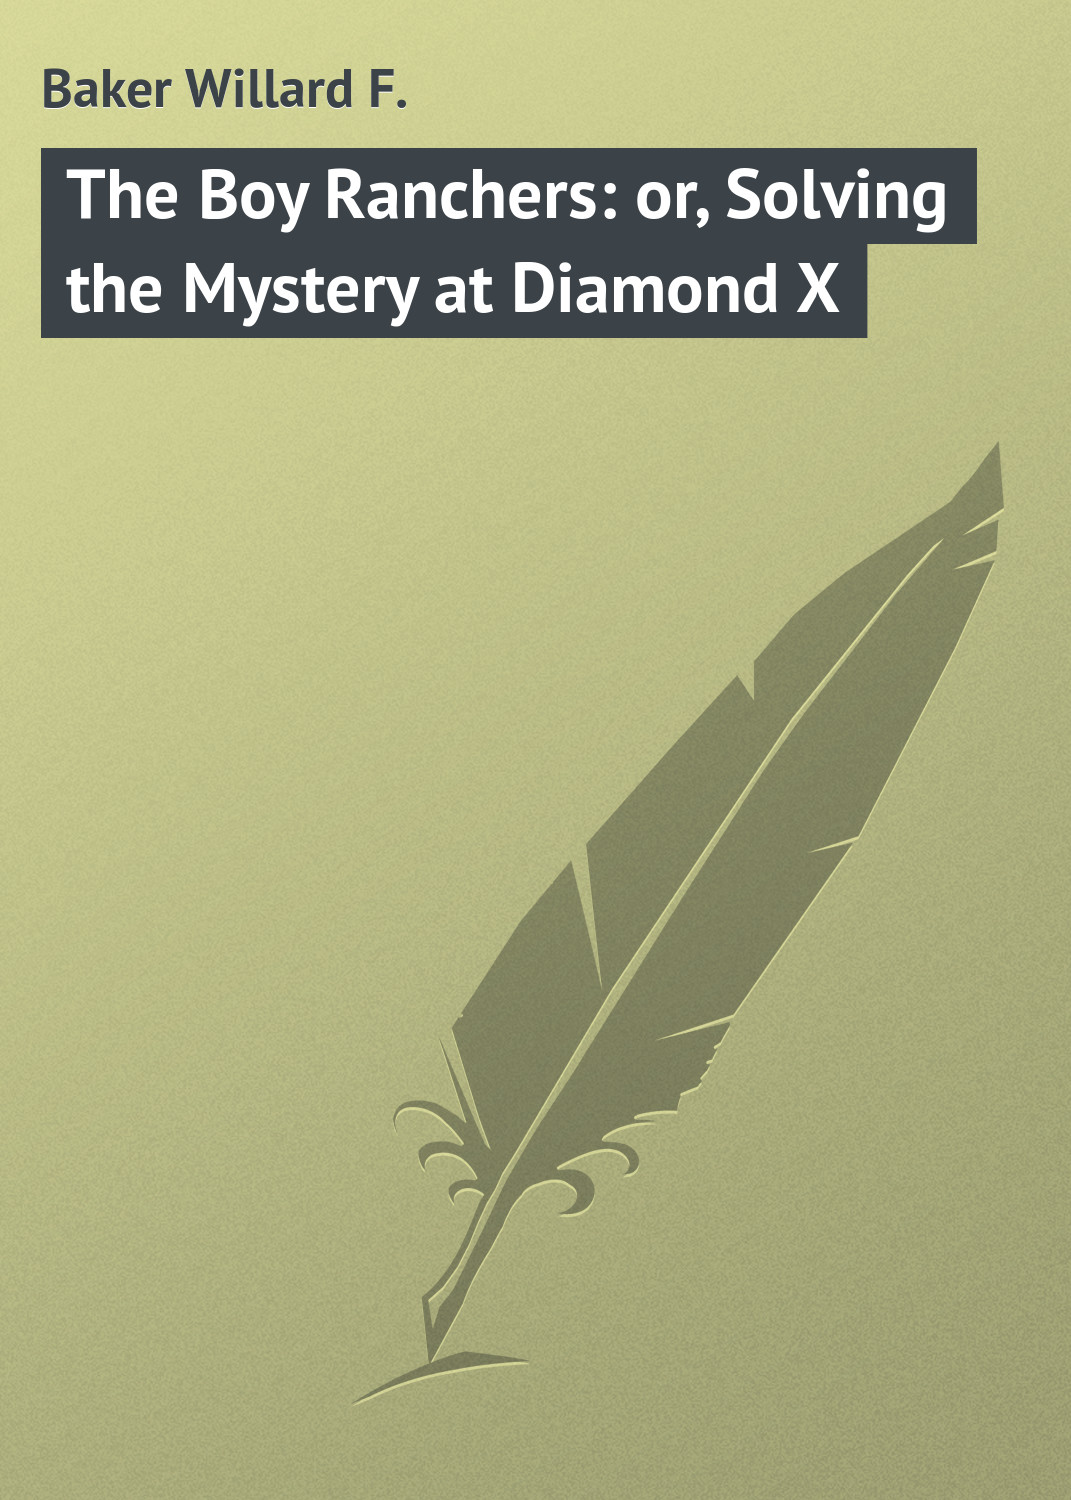 Baker Willard F. The Boy Ranchers: or, Solving the Mystery at Diamond X the artful baker